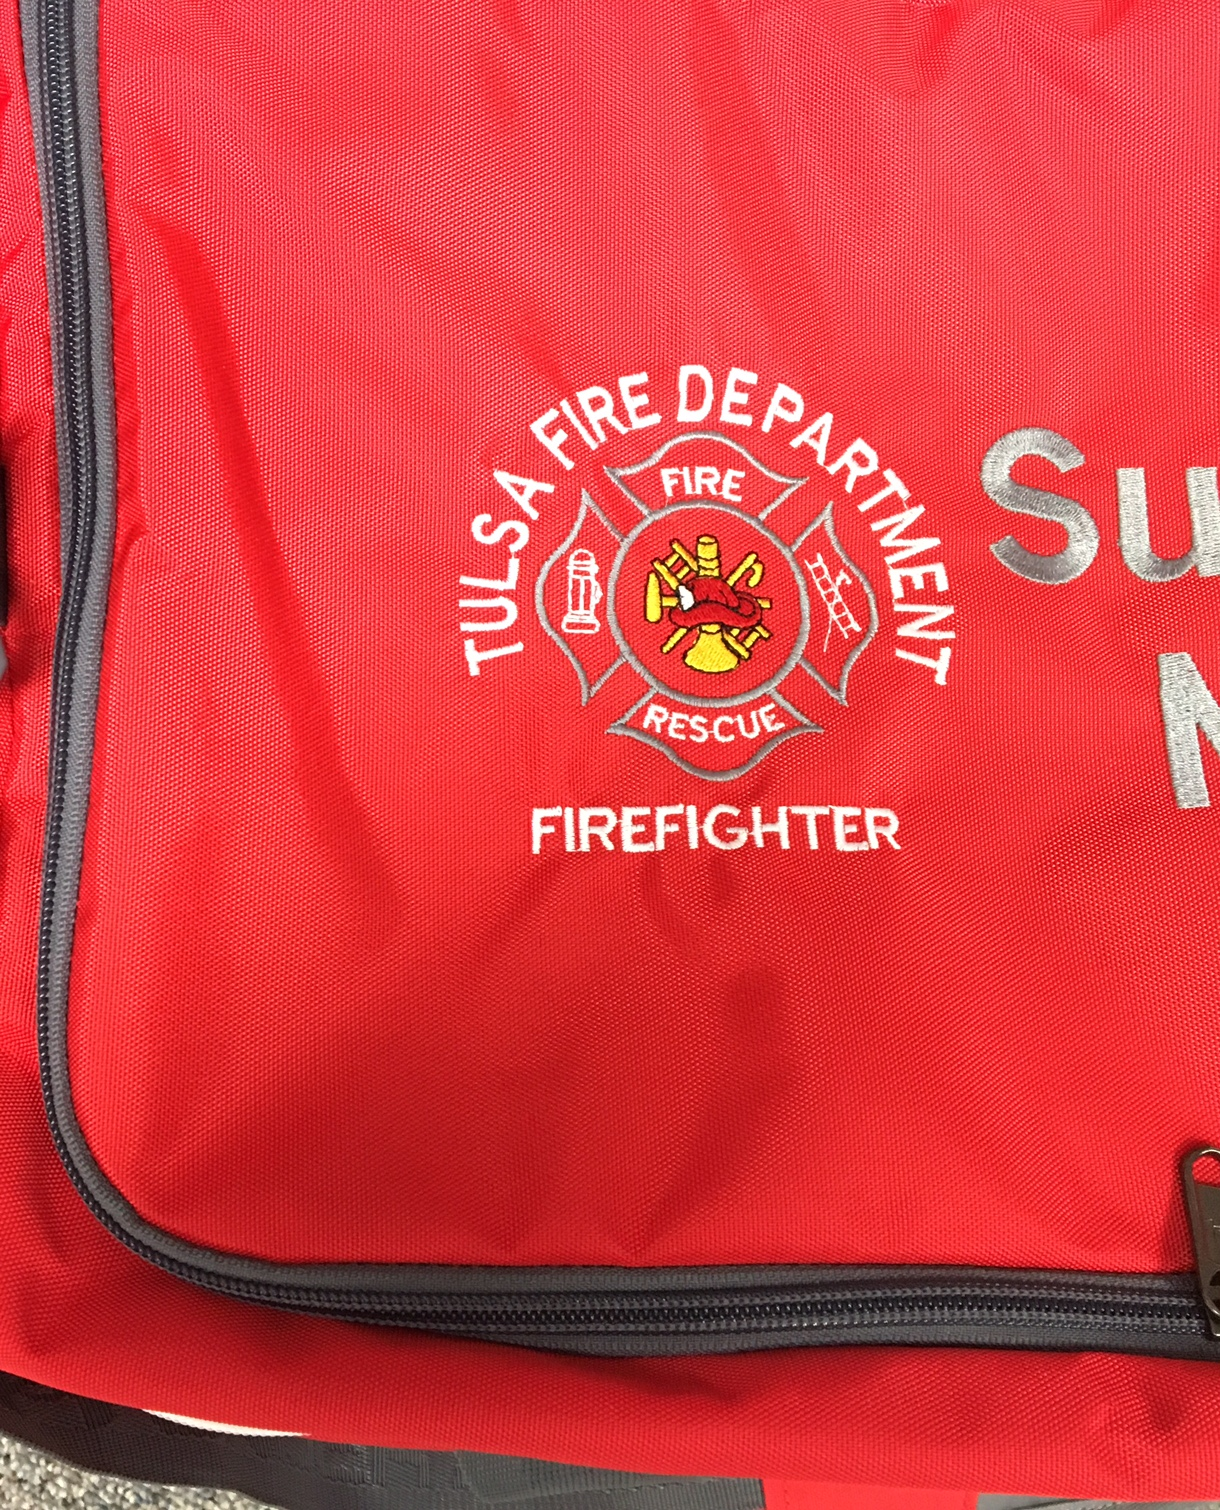 TFD logo on duffel bag.